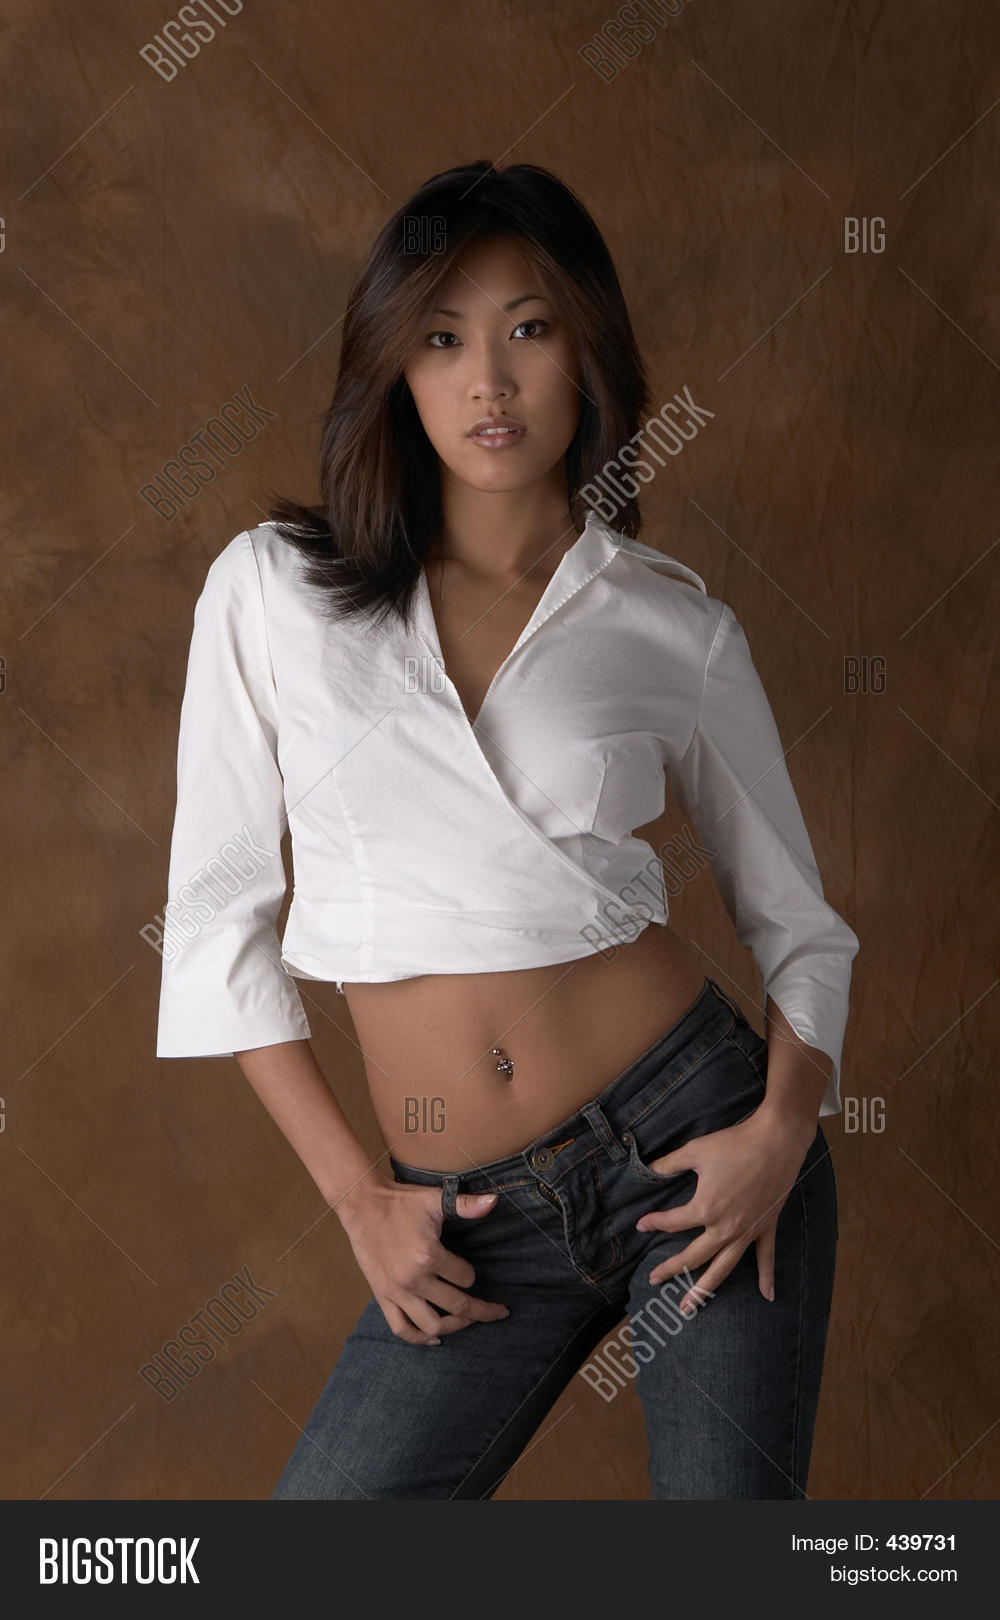 Locas asian woman images yes She